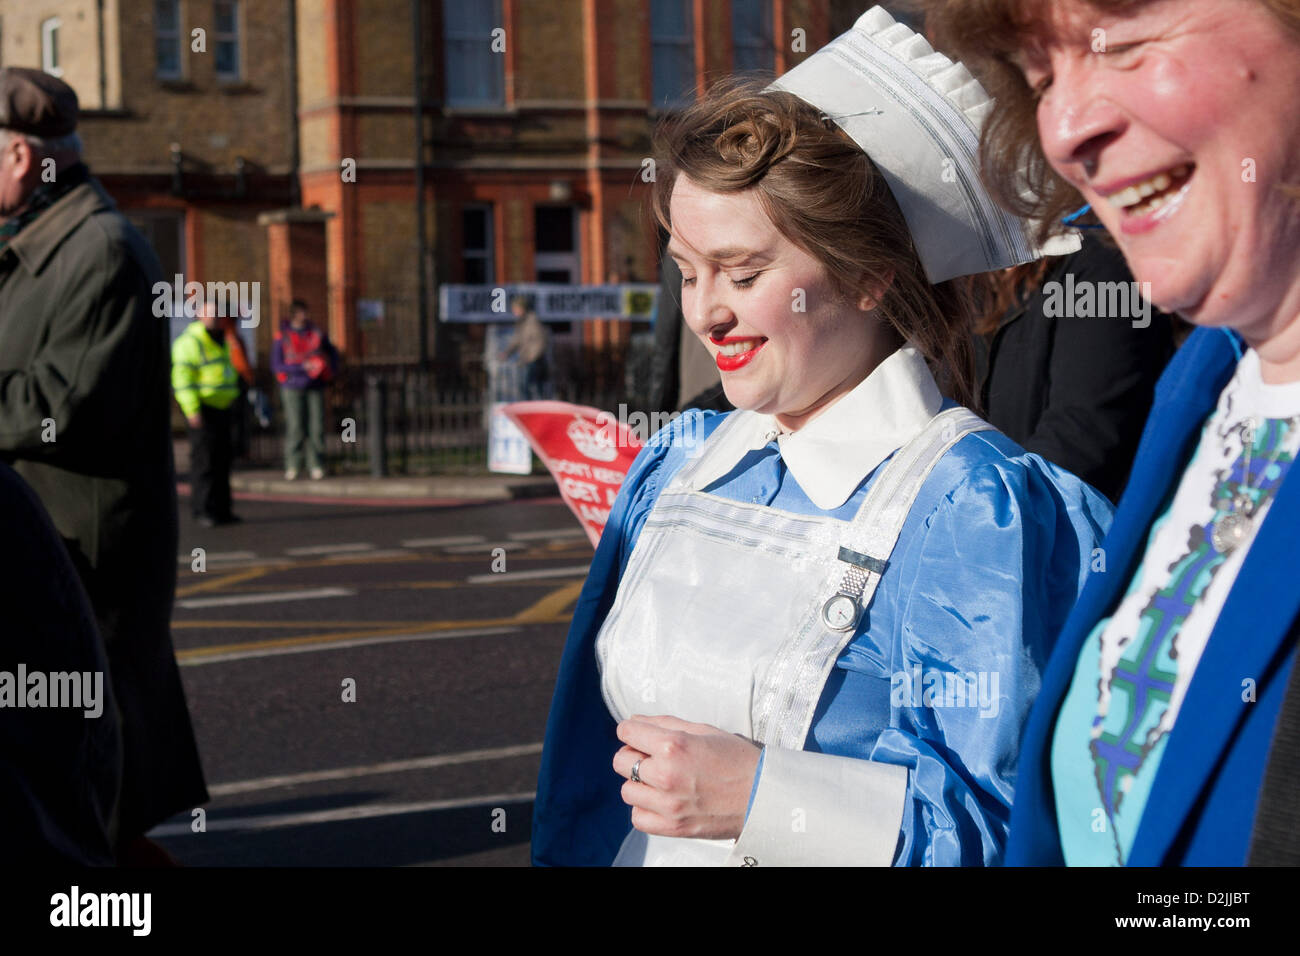 London UK. 26th January 2013. . Thousands of local people marching to a rally in opposition to hospital closures - Stock Image